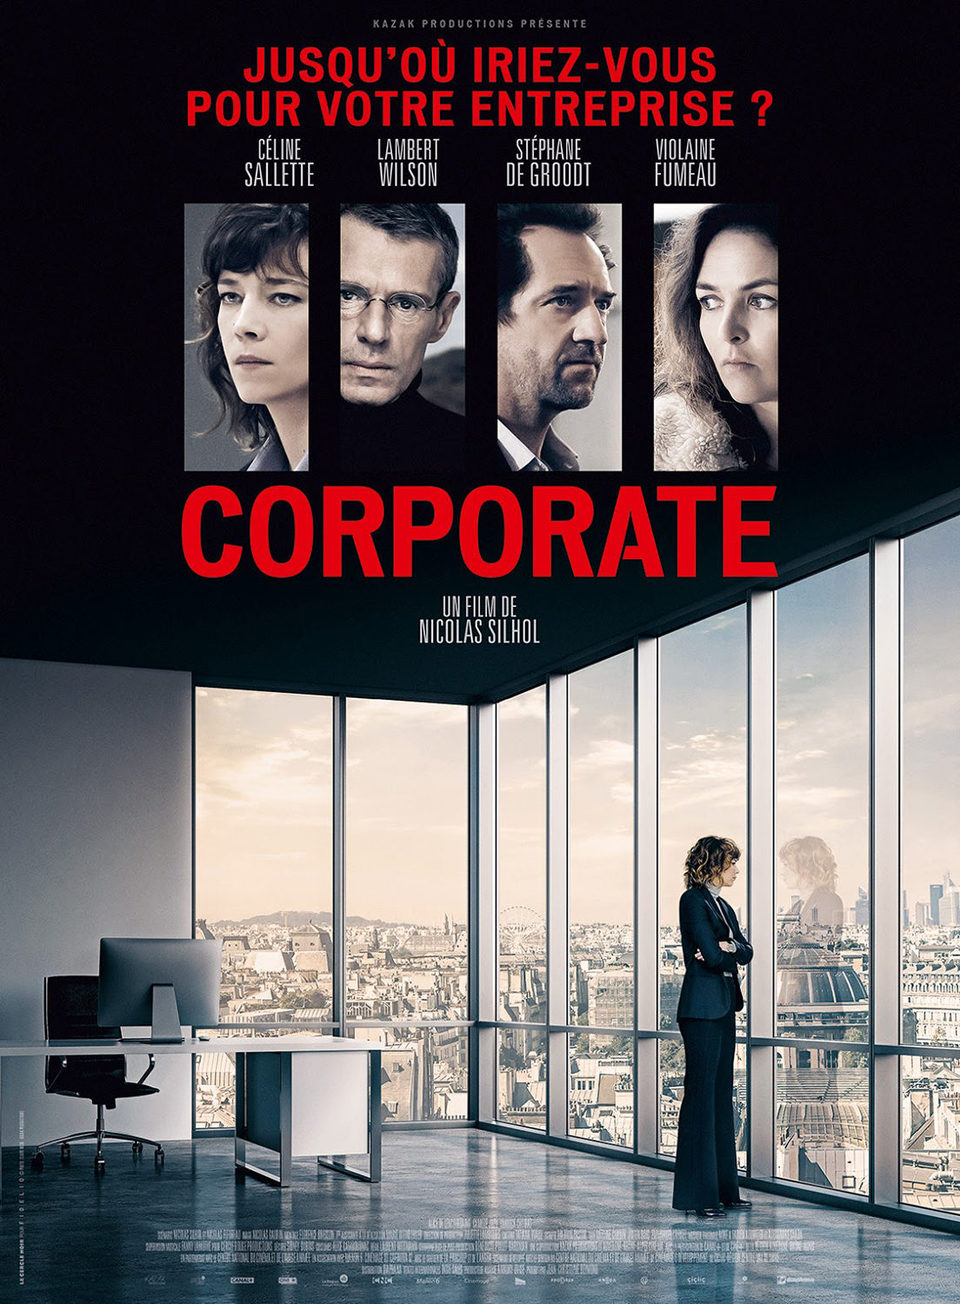 Francia poster for Corporate